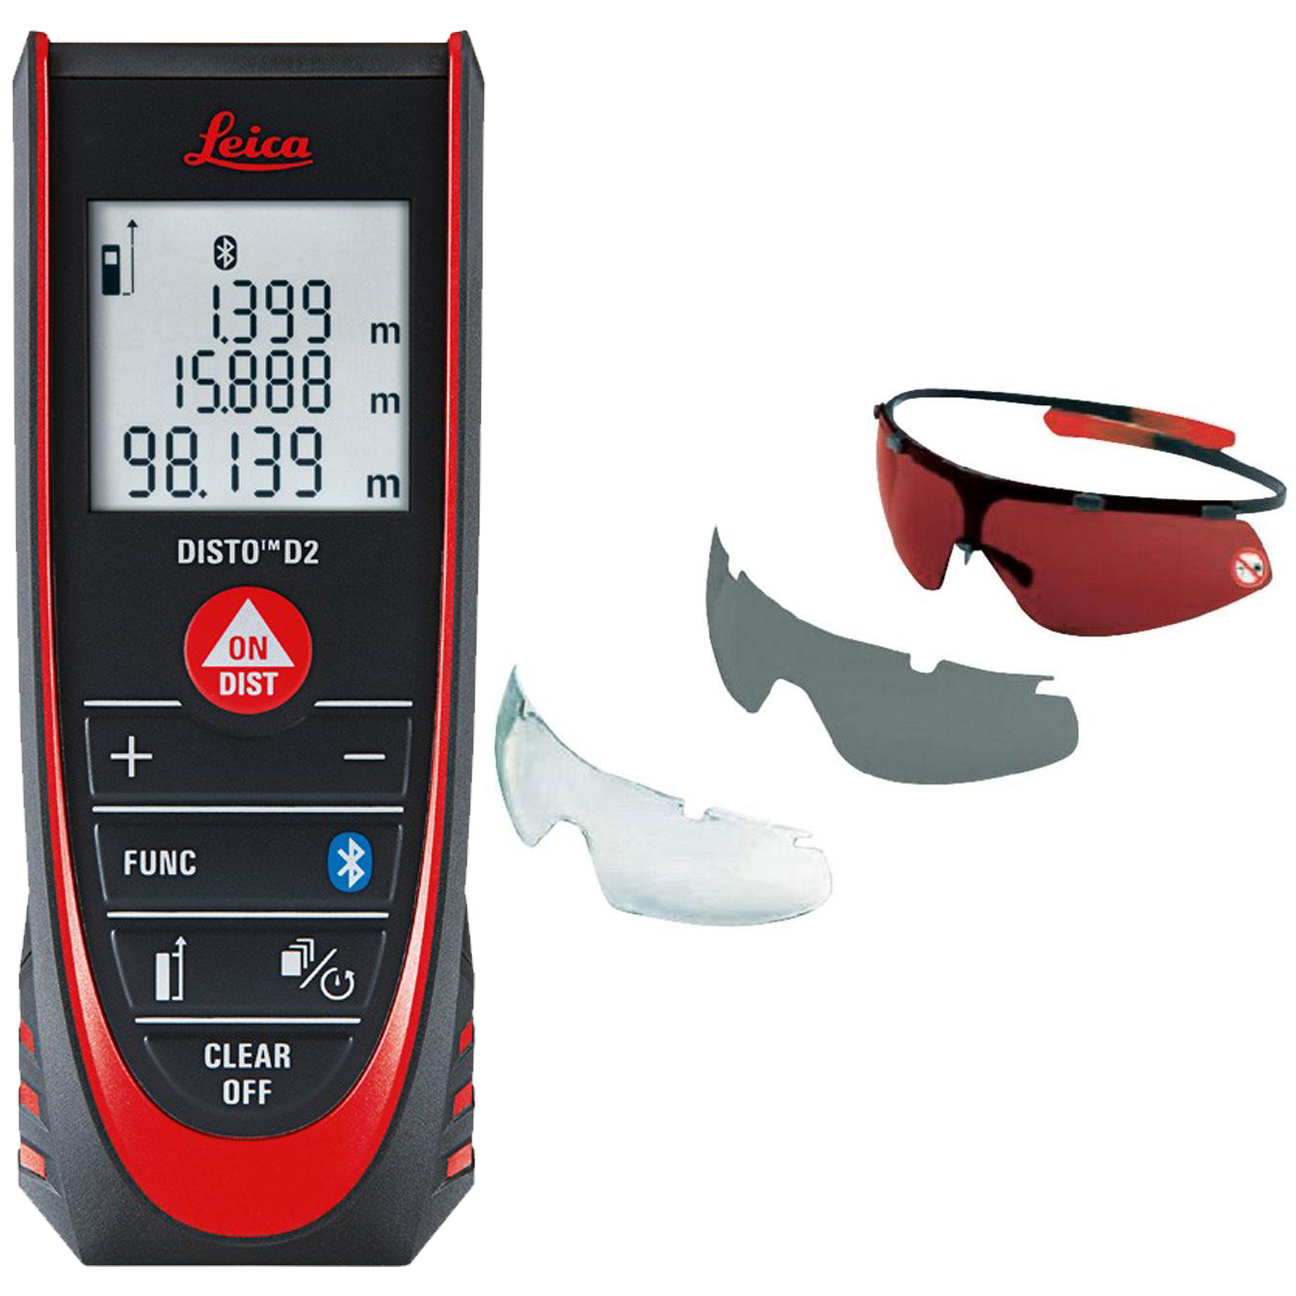 Leica DISTO D2 Laser Distance Meter with Bluetooth + GLB30 Laser Glasses (3-Pack)